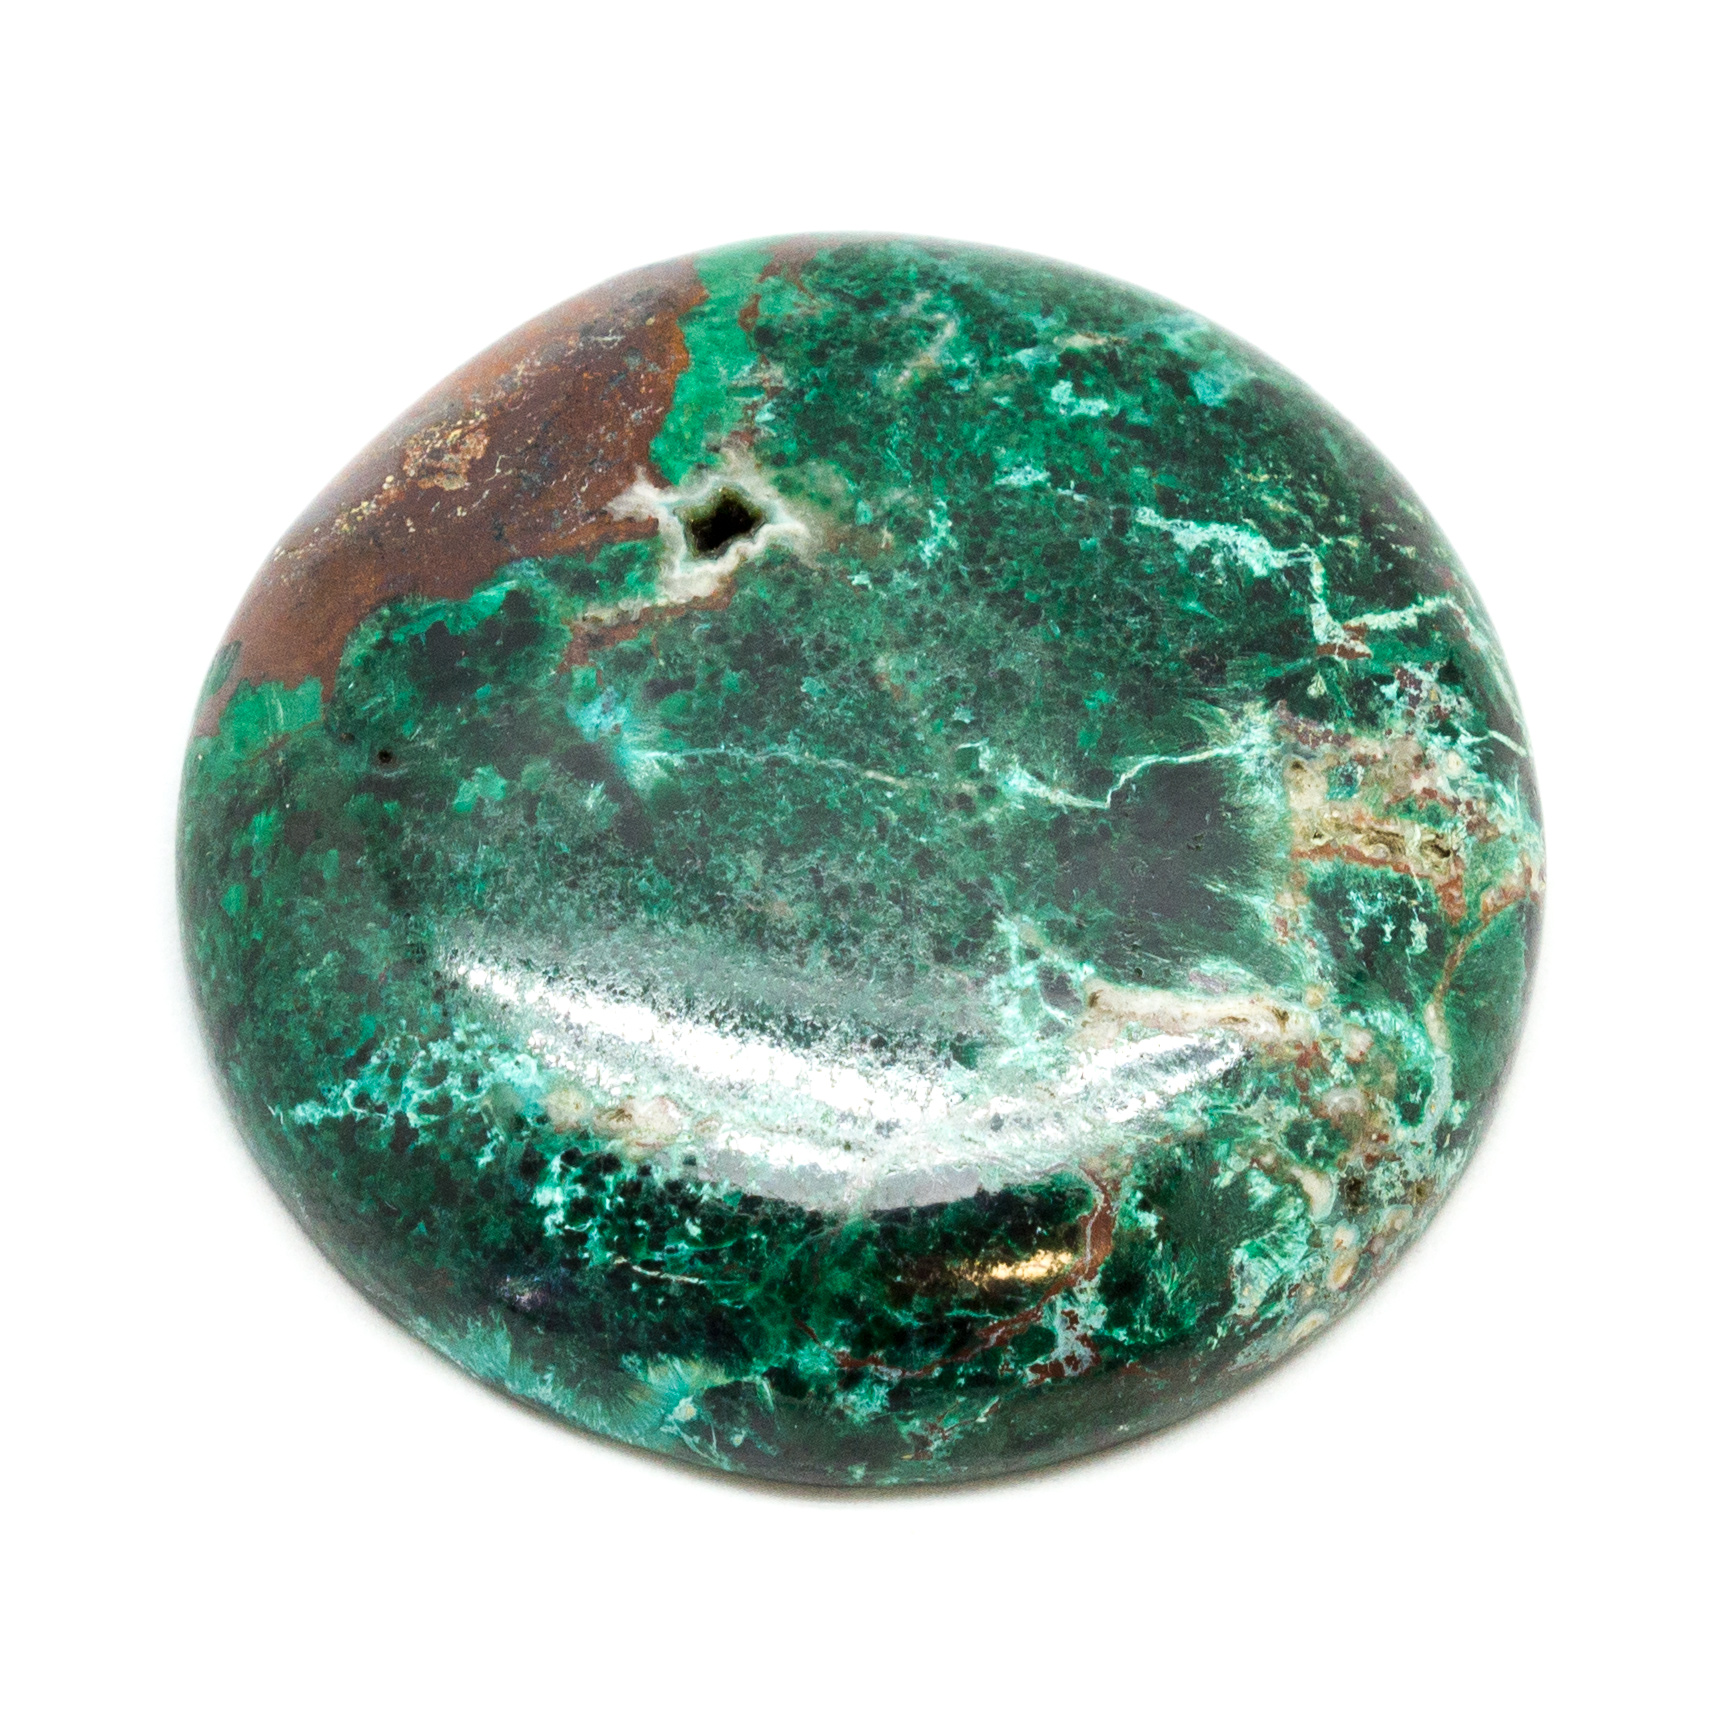 92 Ct Attractive Top Grade Quality 100/% Natural Chrysocolla Malachite Heart Shape Cabochon Loose Gemstone For Making Jewelry 38X37X7mm AK952